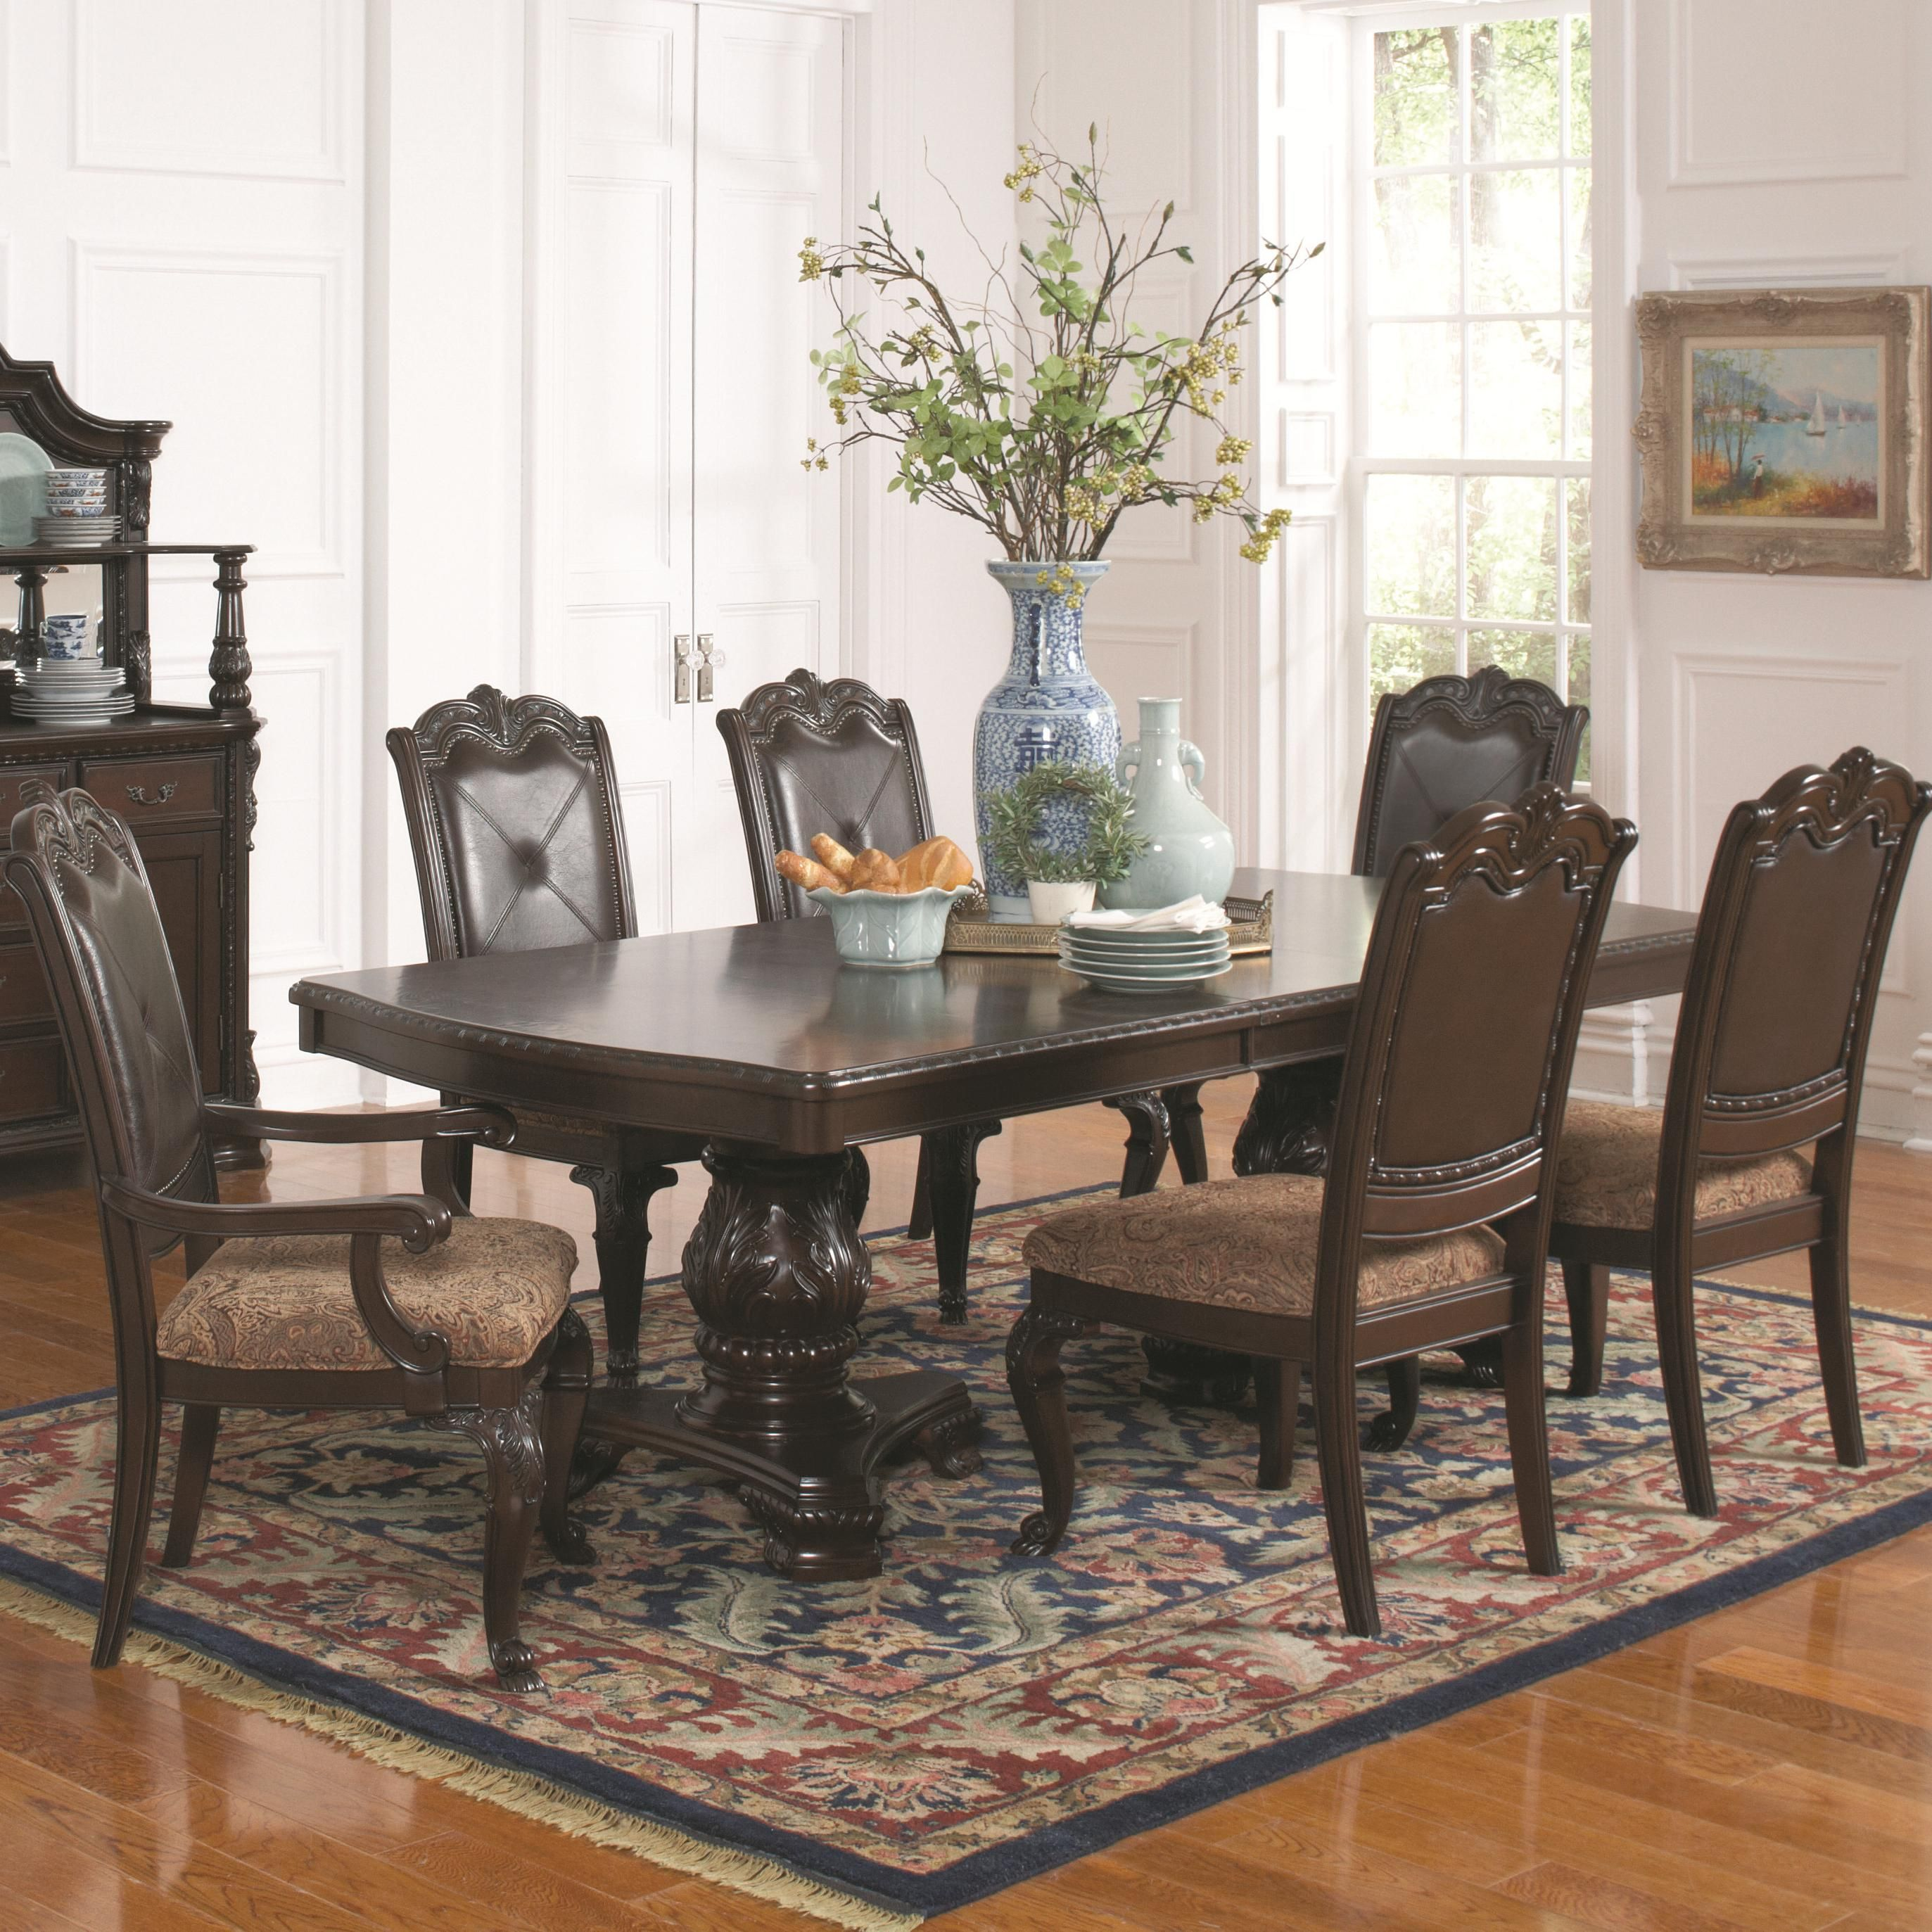 Valentina Seven Piece Formal Dining Set By Coaster At Del Sol